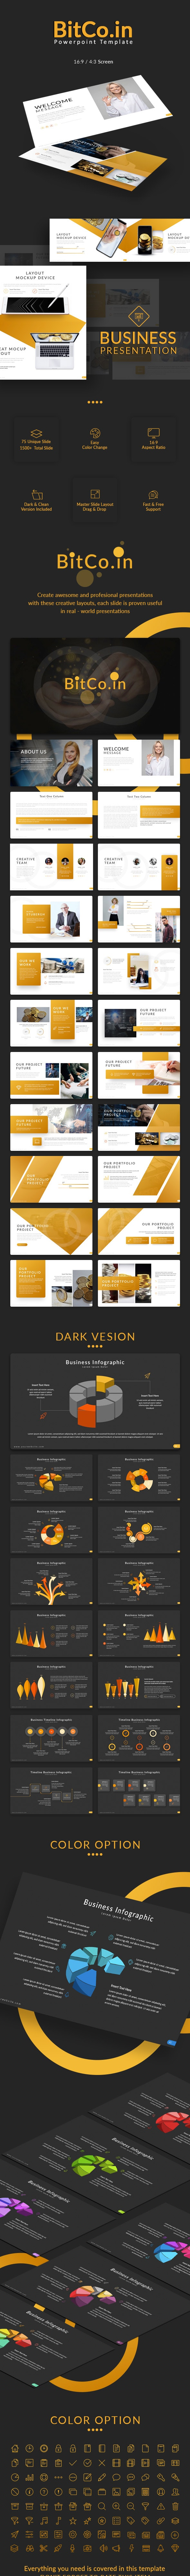 Bitco.in Powerpoint Template - Business PowerPoint Templates